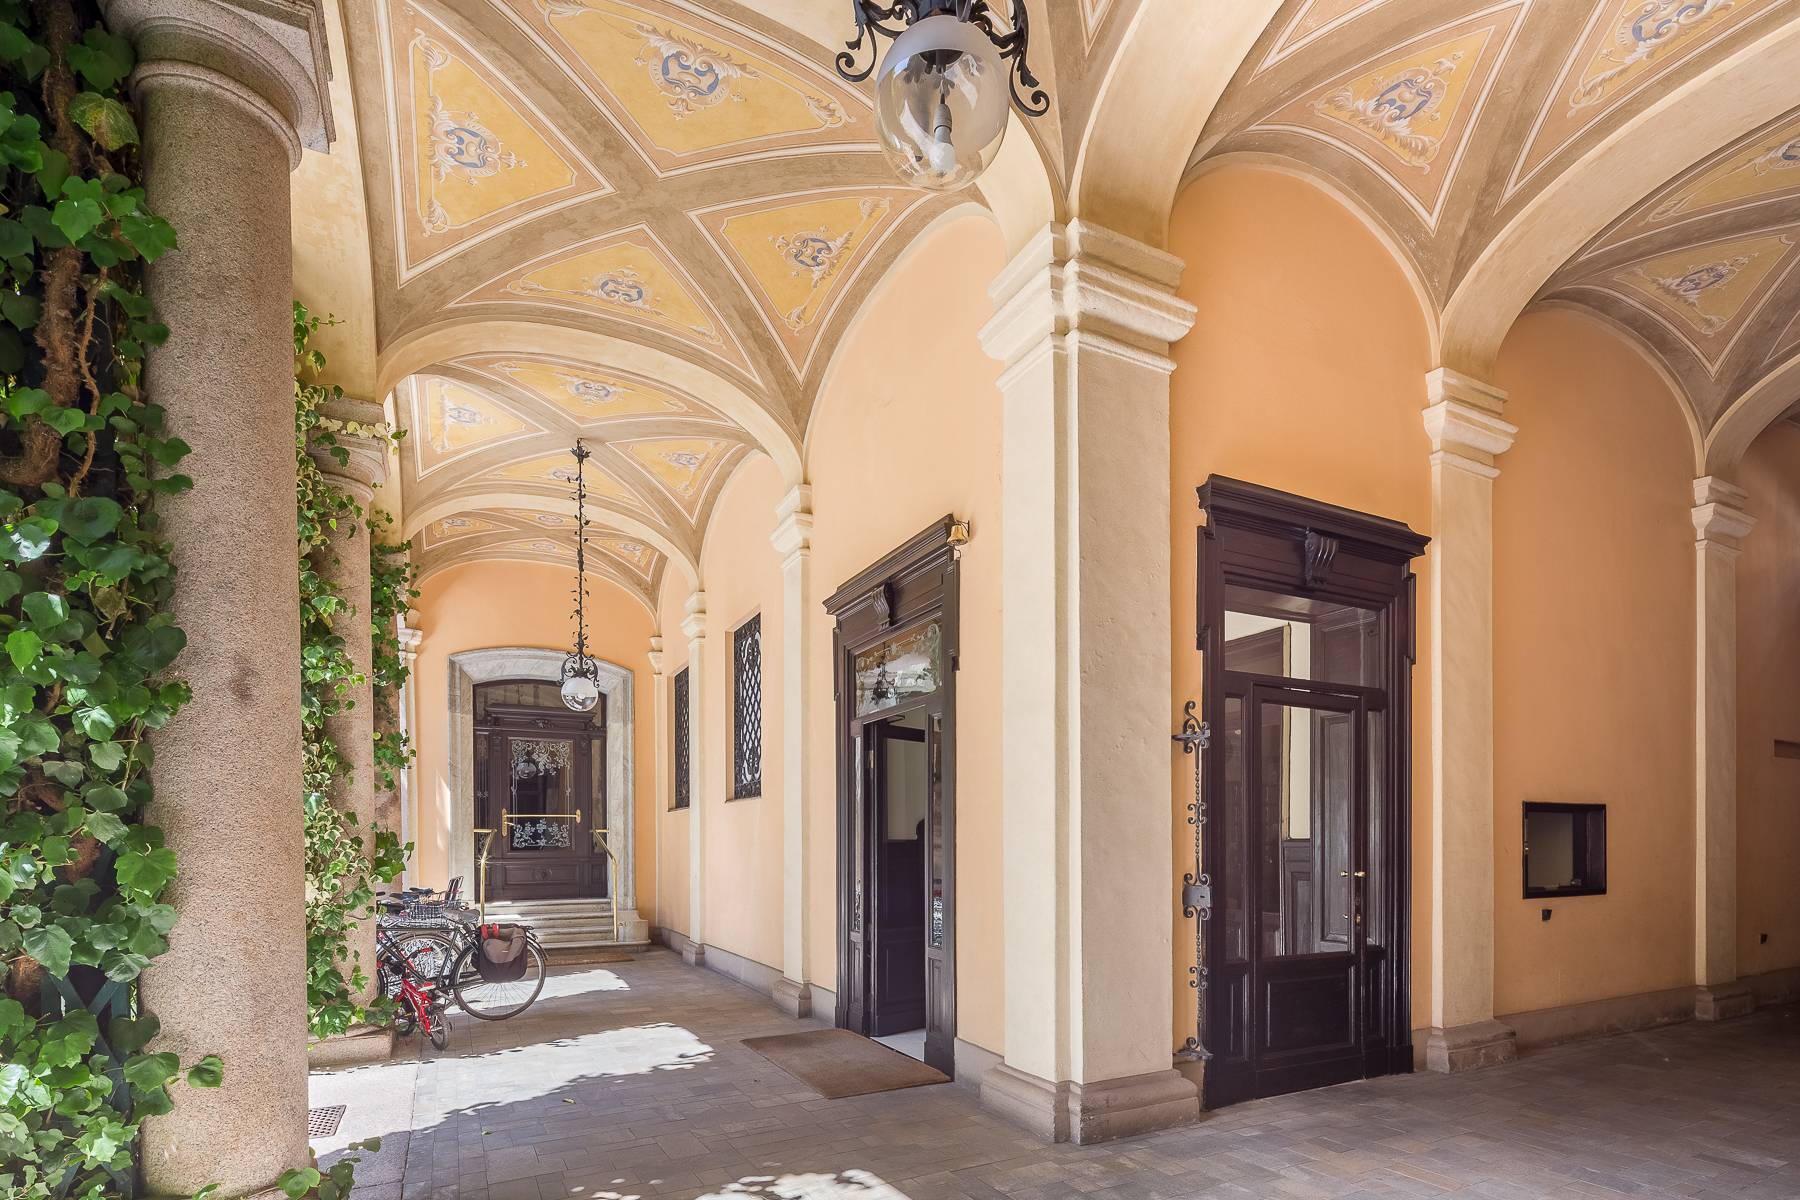 Apartment / loft in Brera district, Via Montebello / De Marchi - 2